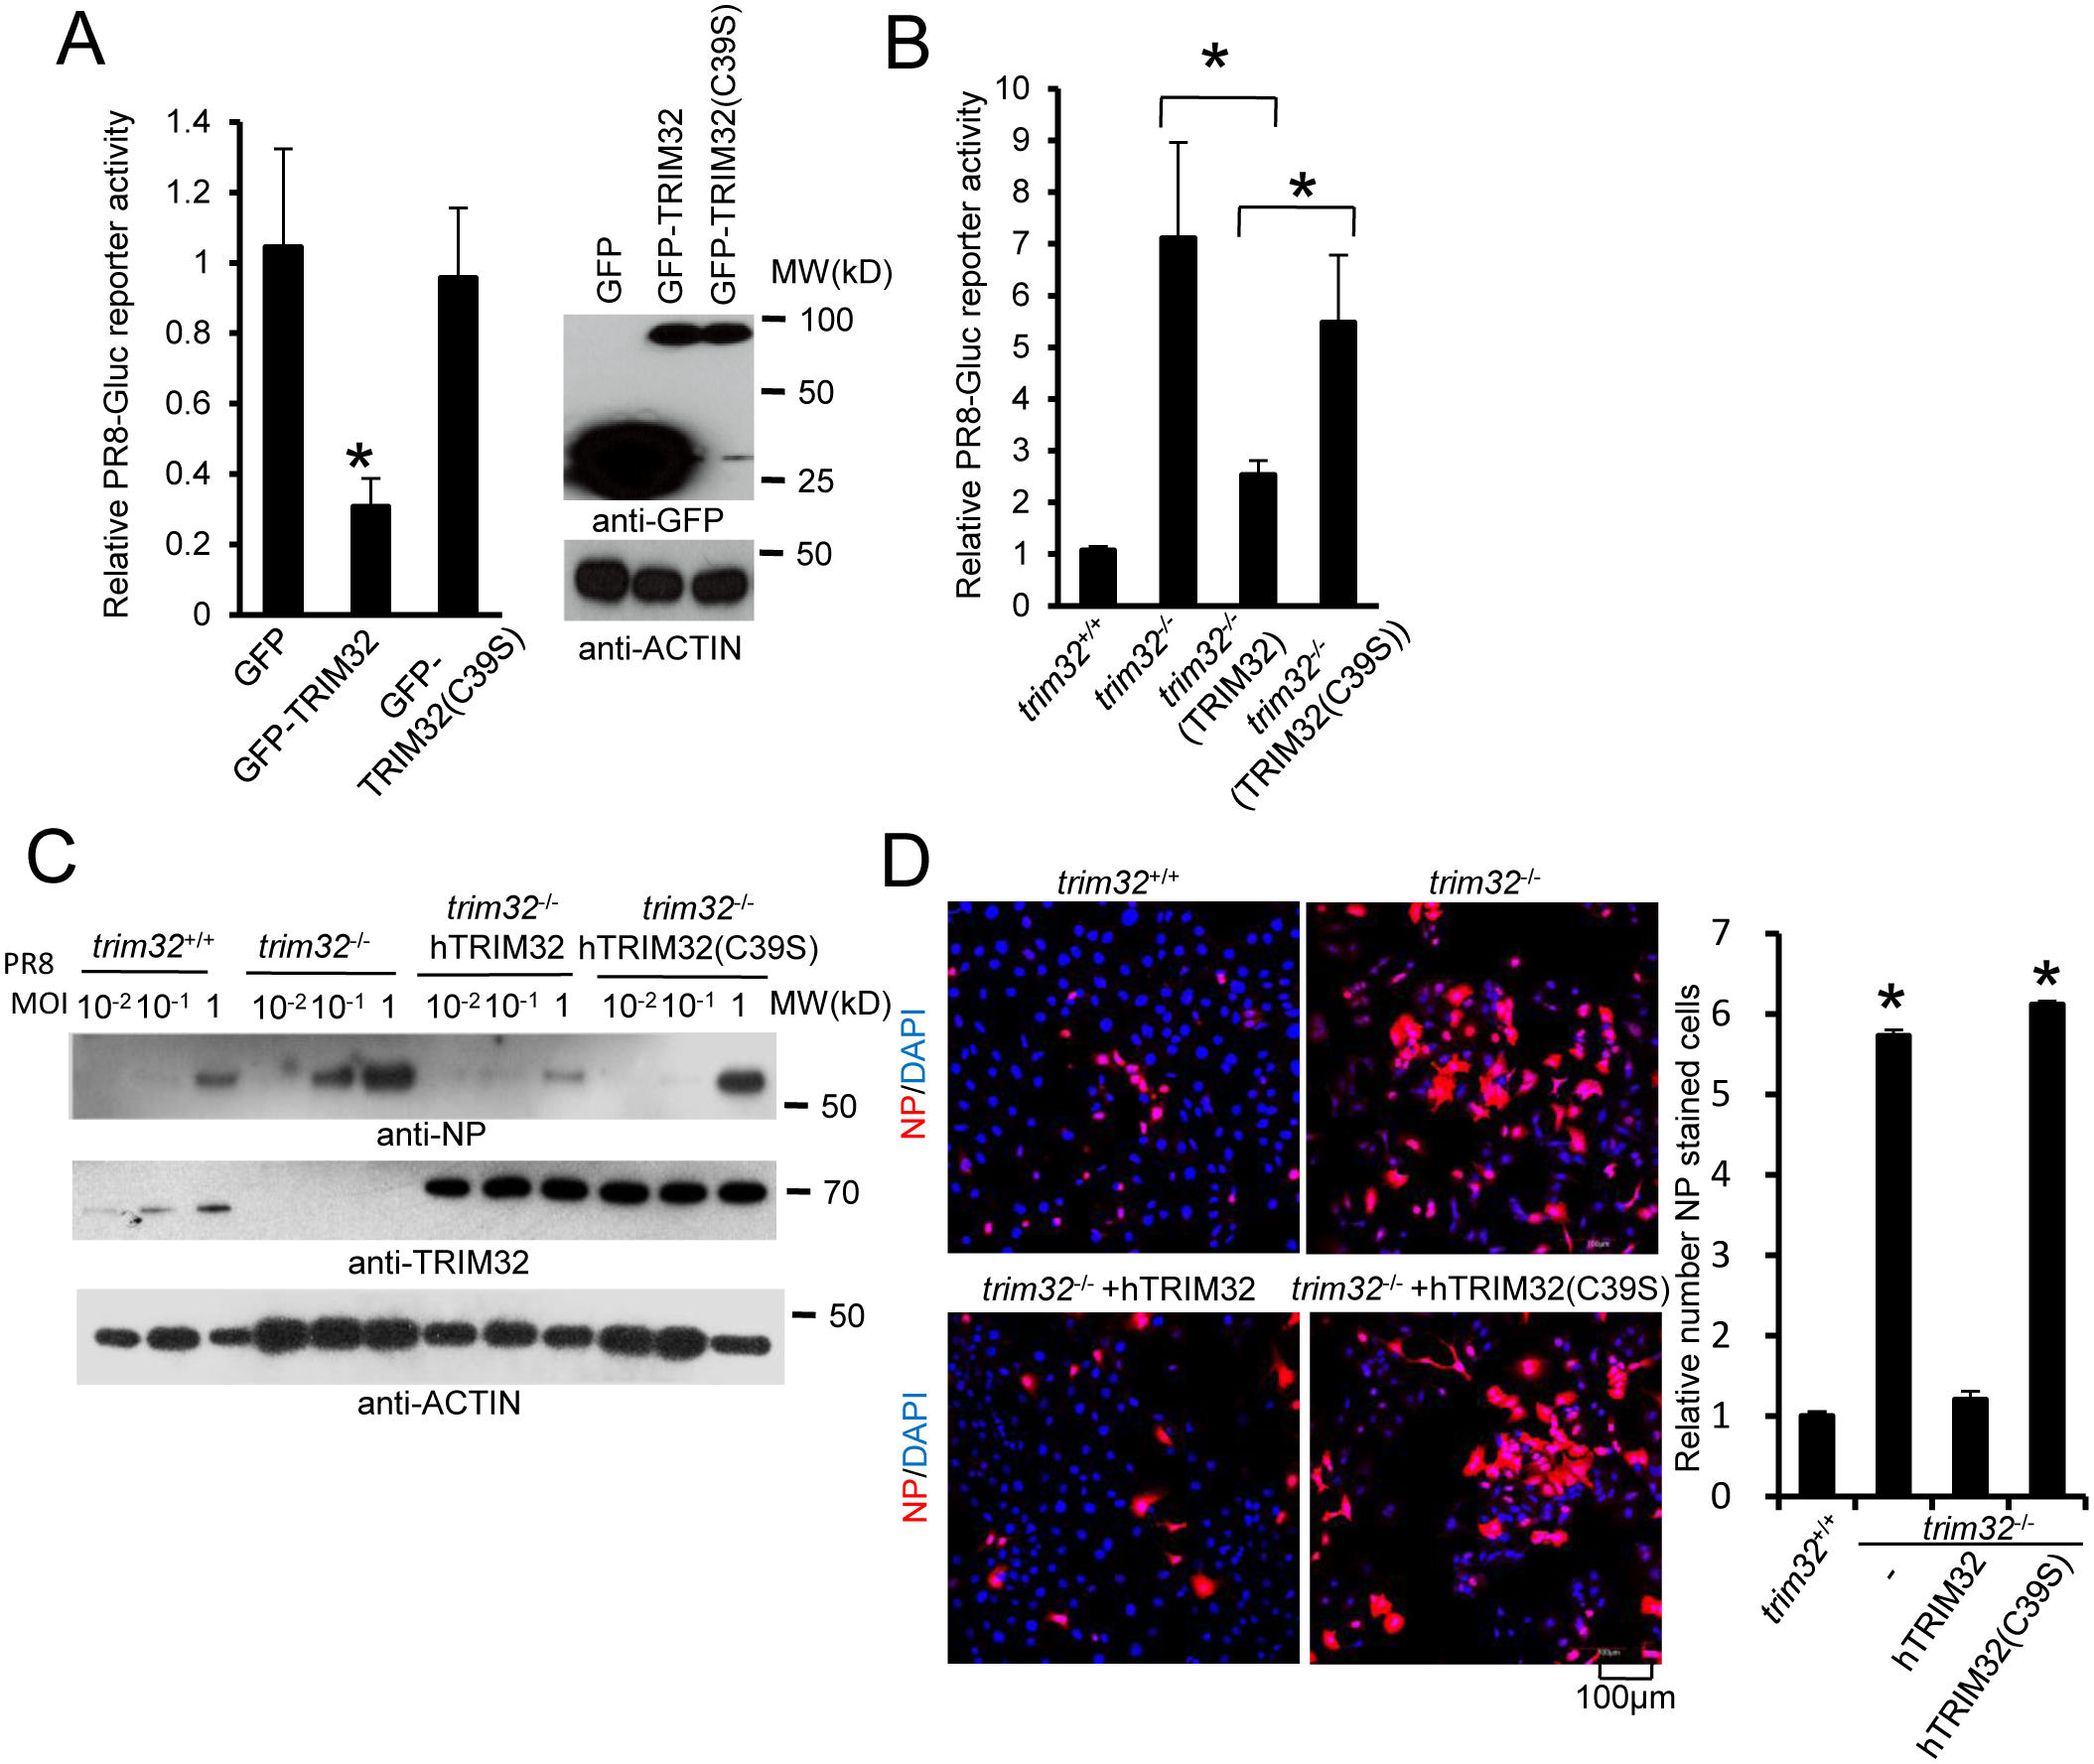 E3 ligase activity is indispensable for TRIM32-dependent against influenza A virus.